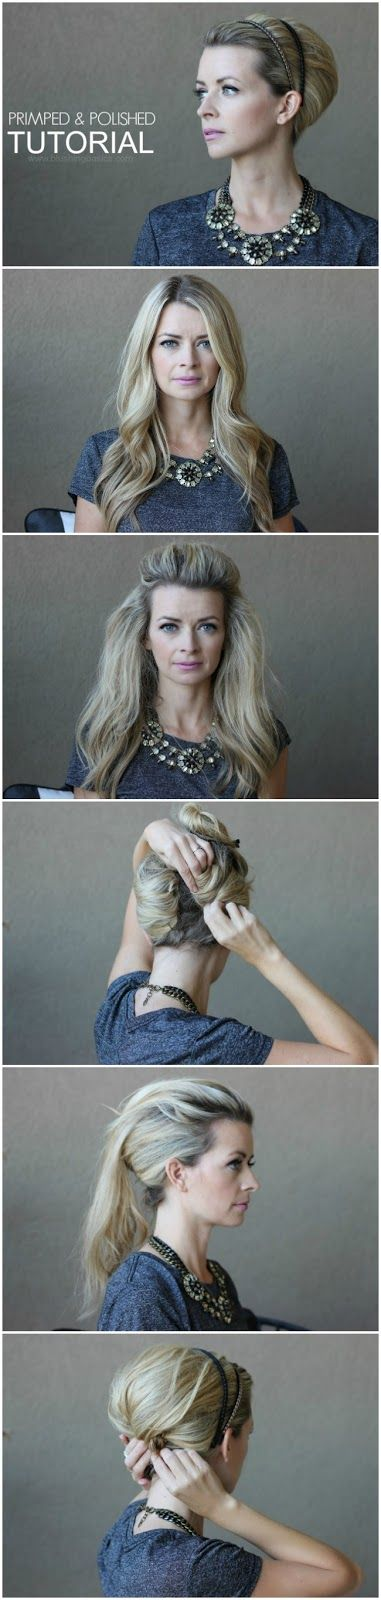 Primped & Polished Hair Tutorial + TRESemmé Transformation Sweepstakes